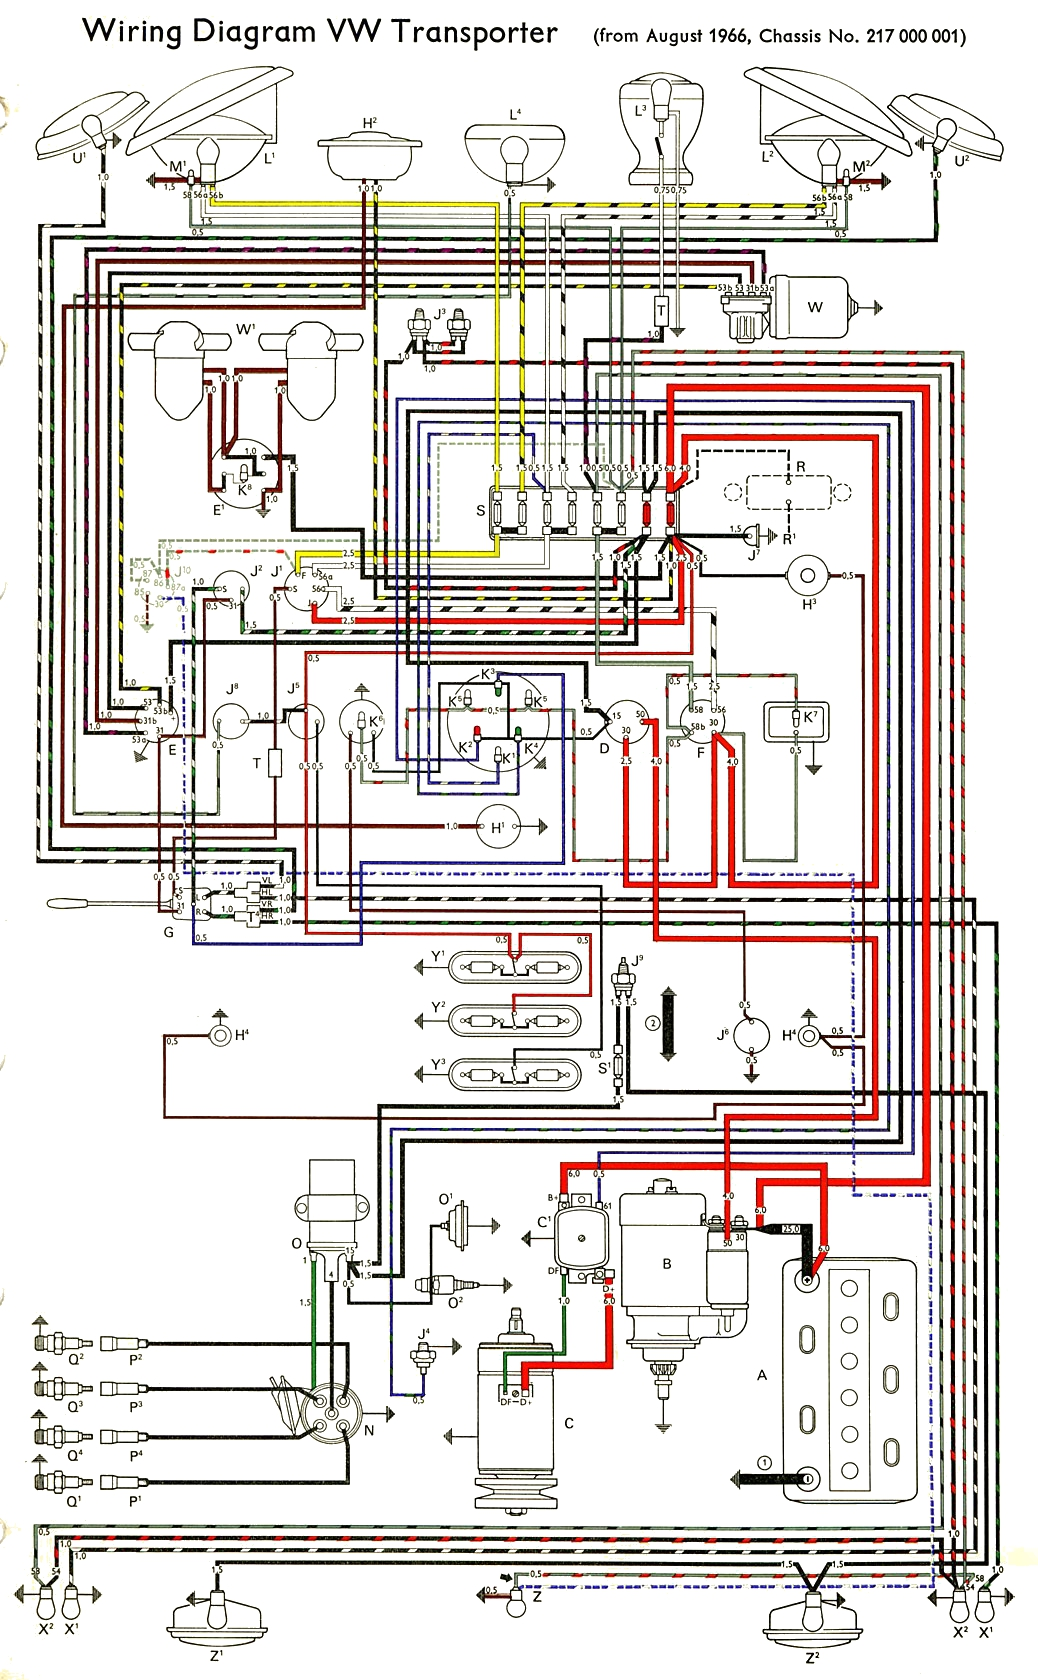 63 chevy impala wiring diagram 63 image wiring diagram 1963 chevy impala wiring diagram 1963 wiring diagrams car on 63 chevy impala wiring diagram